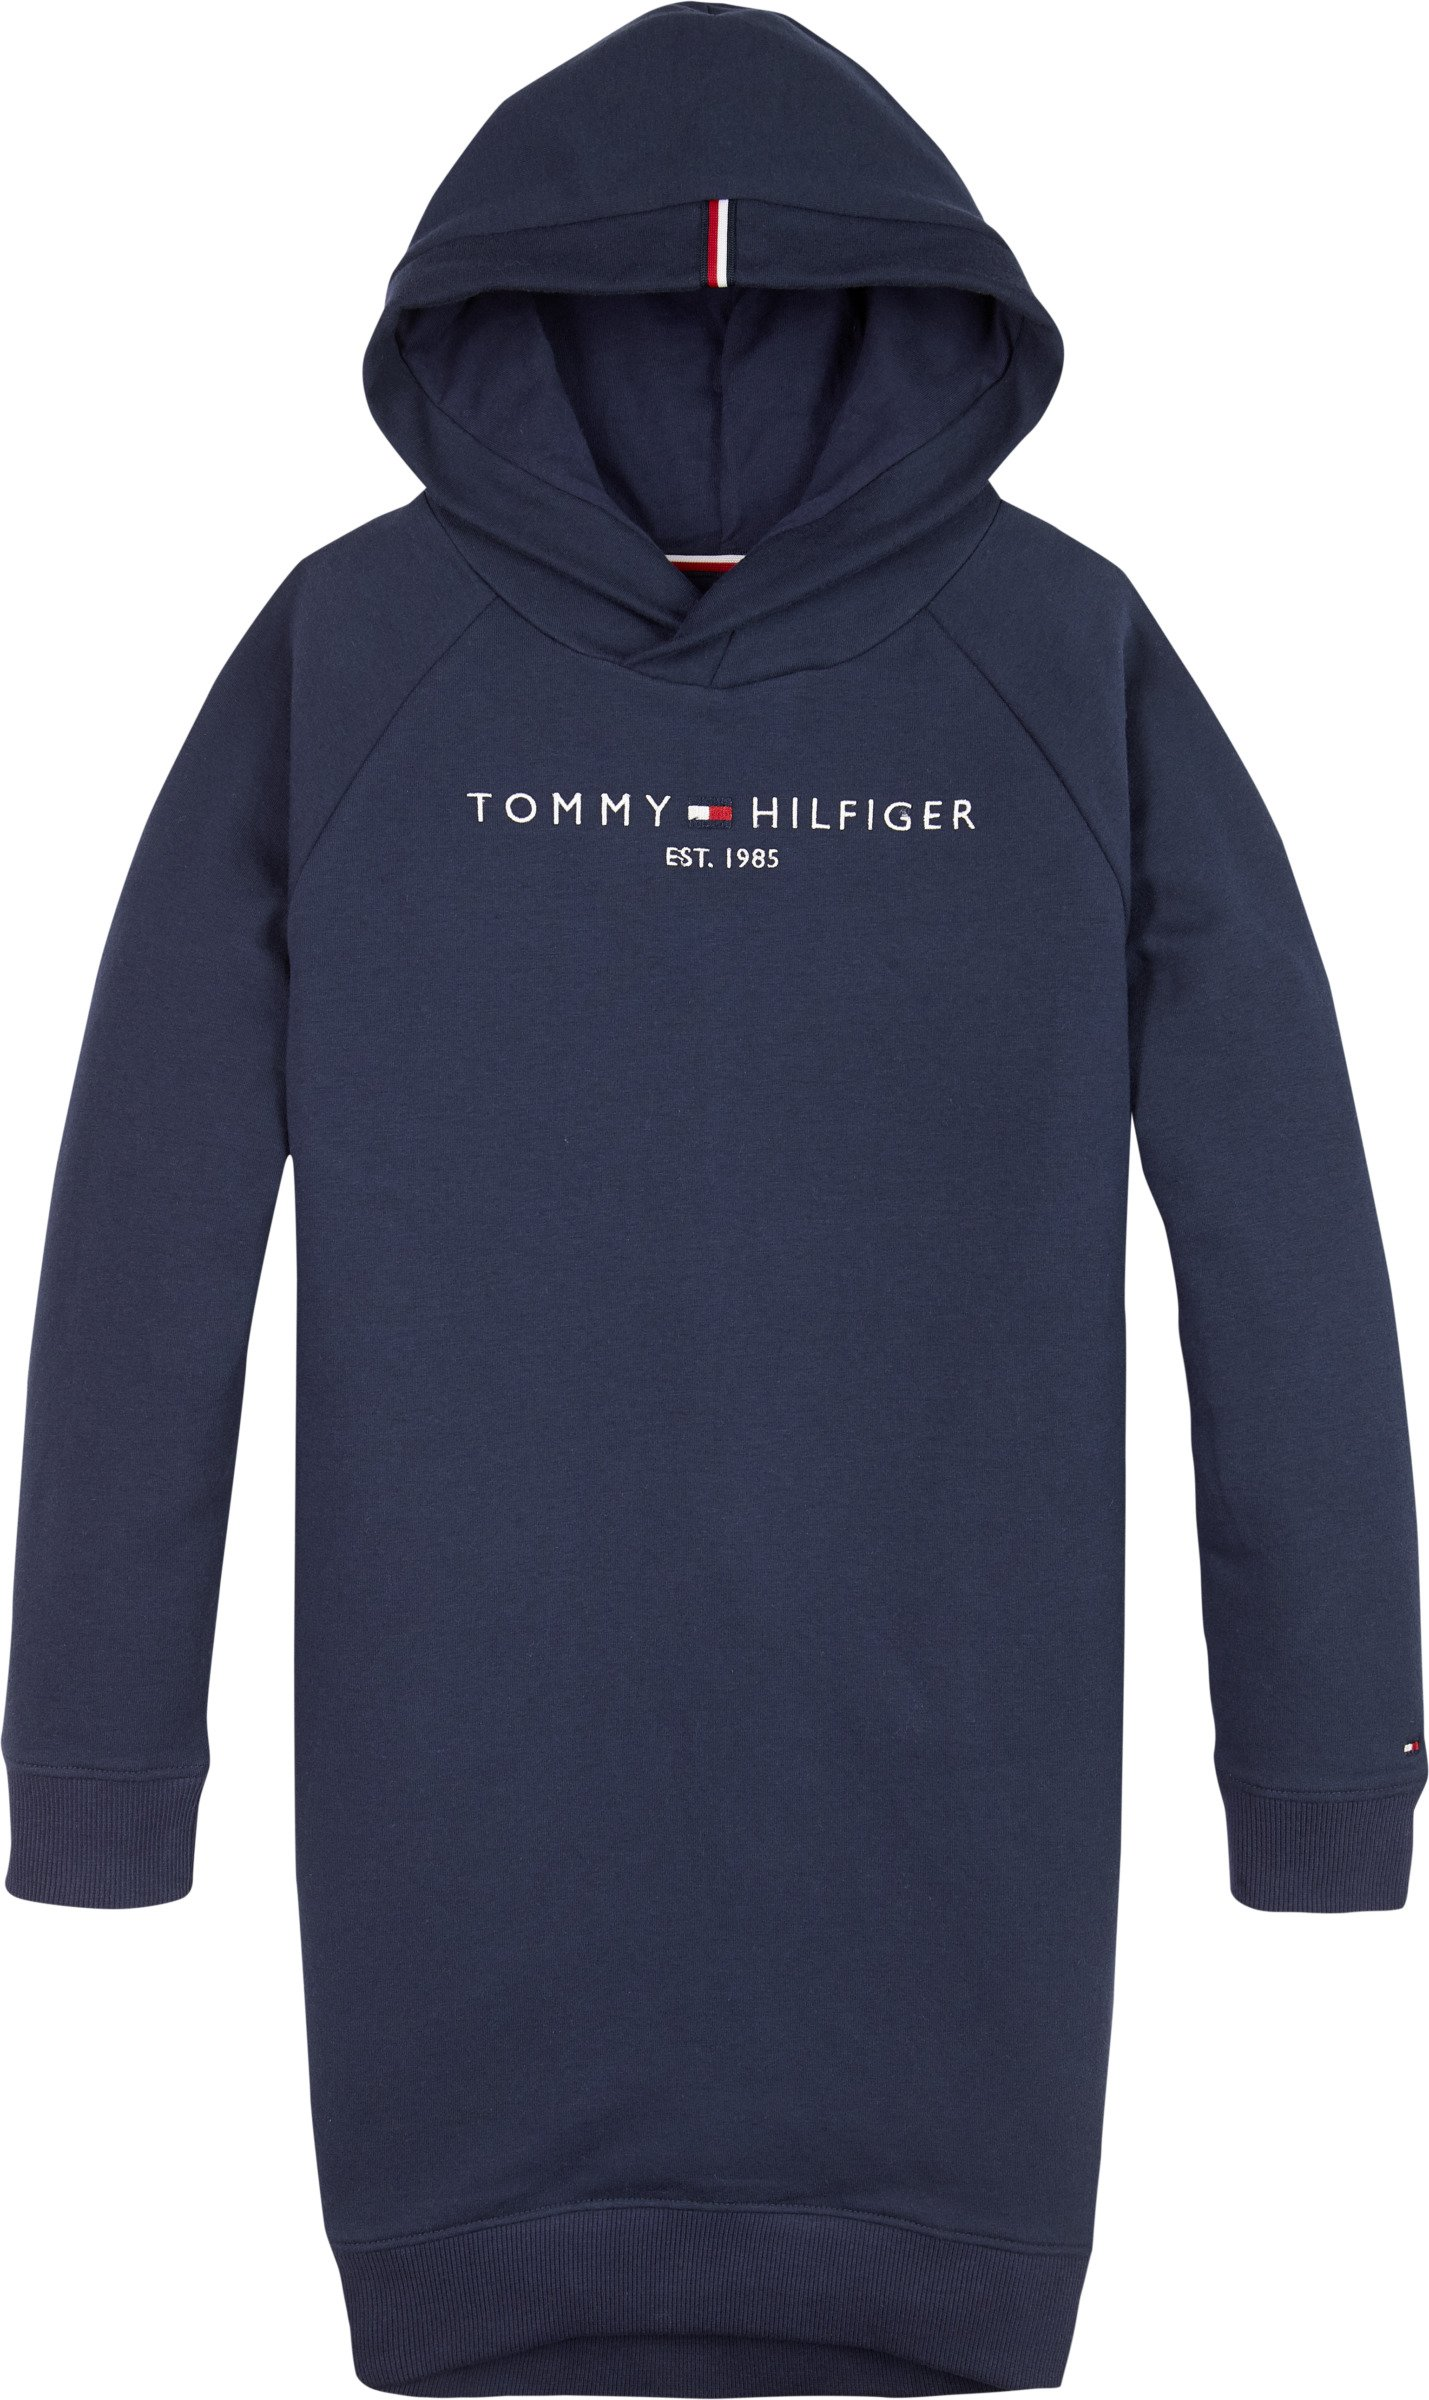 Tommy Hilfiger, essential hooded sweatdress sininen